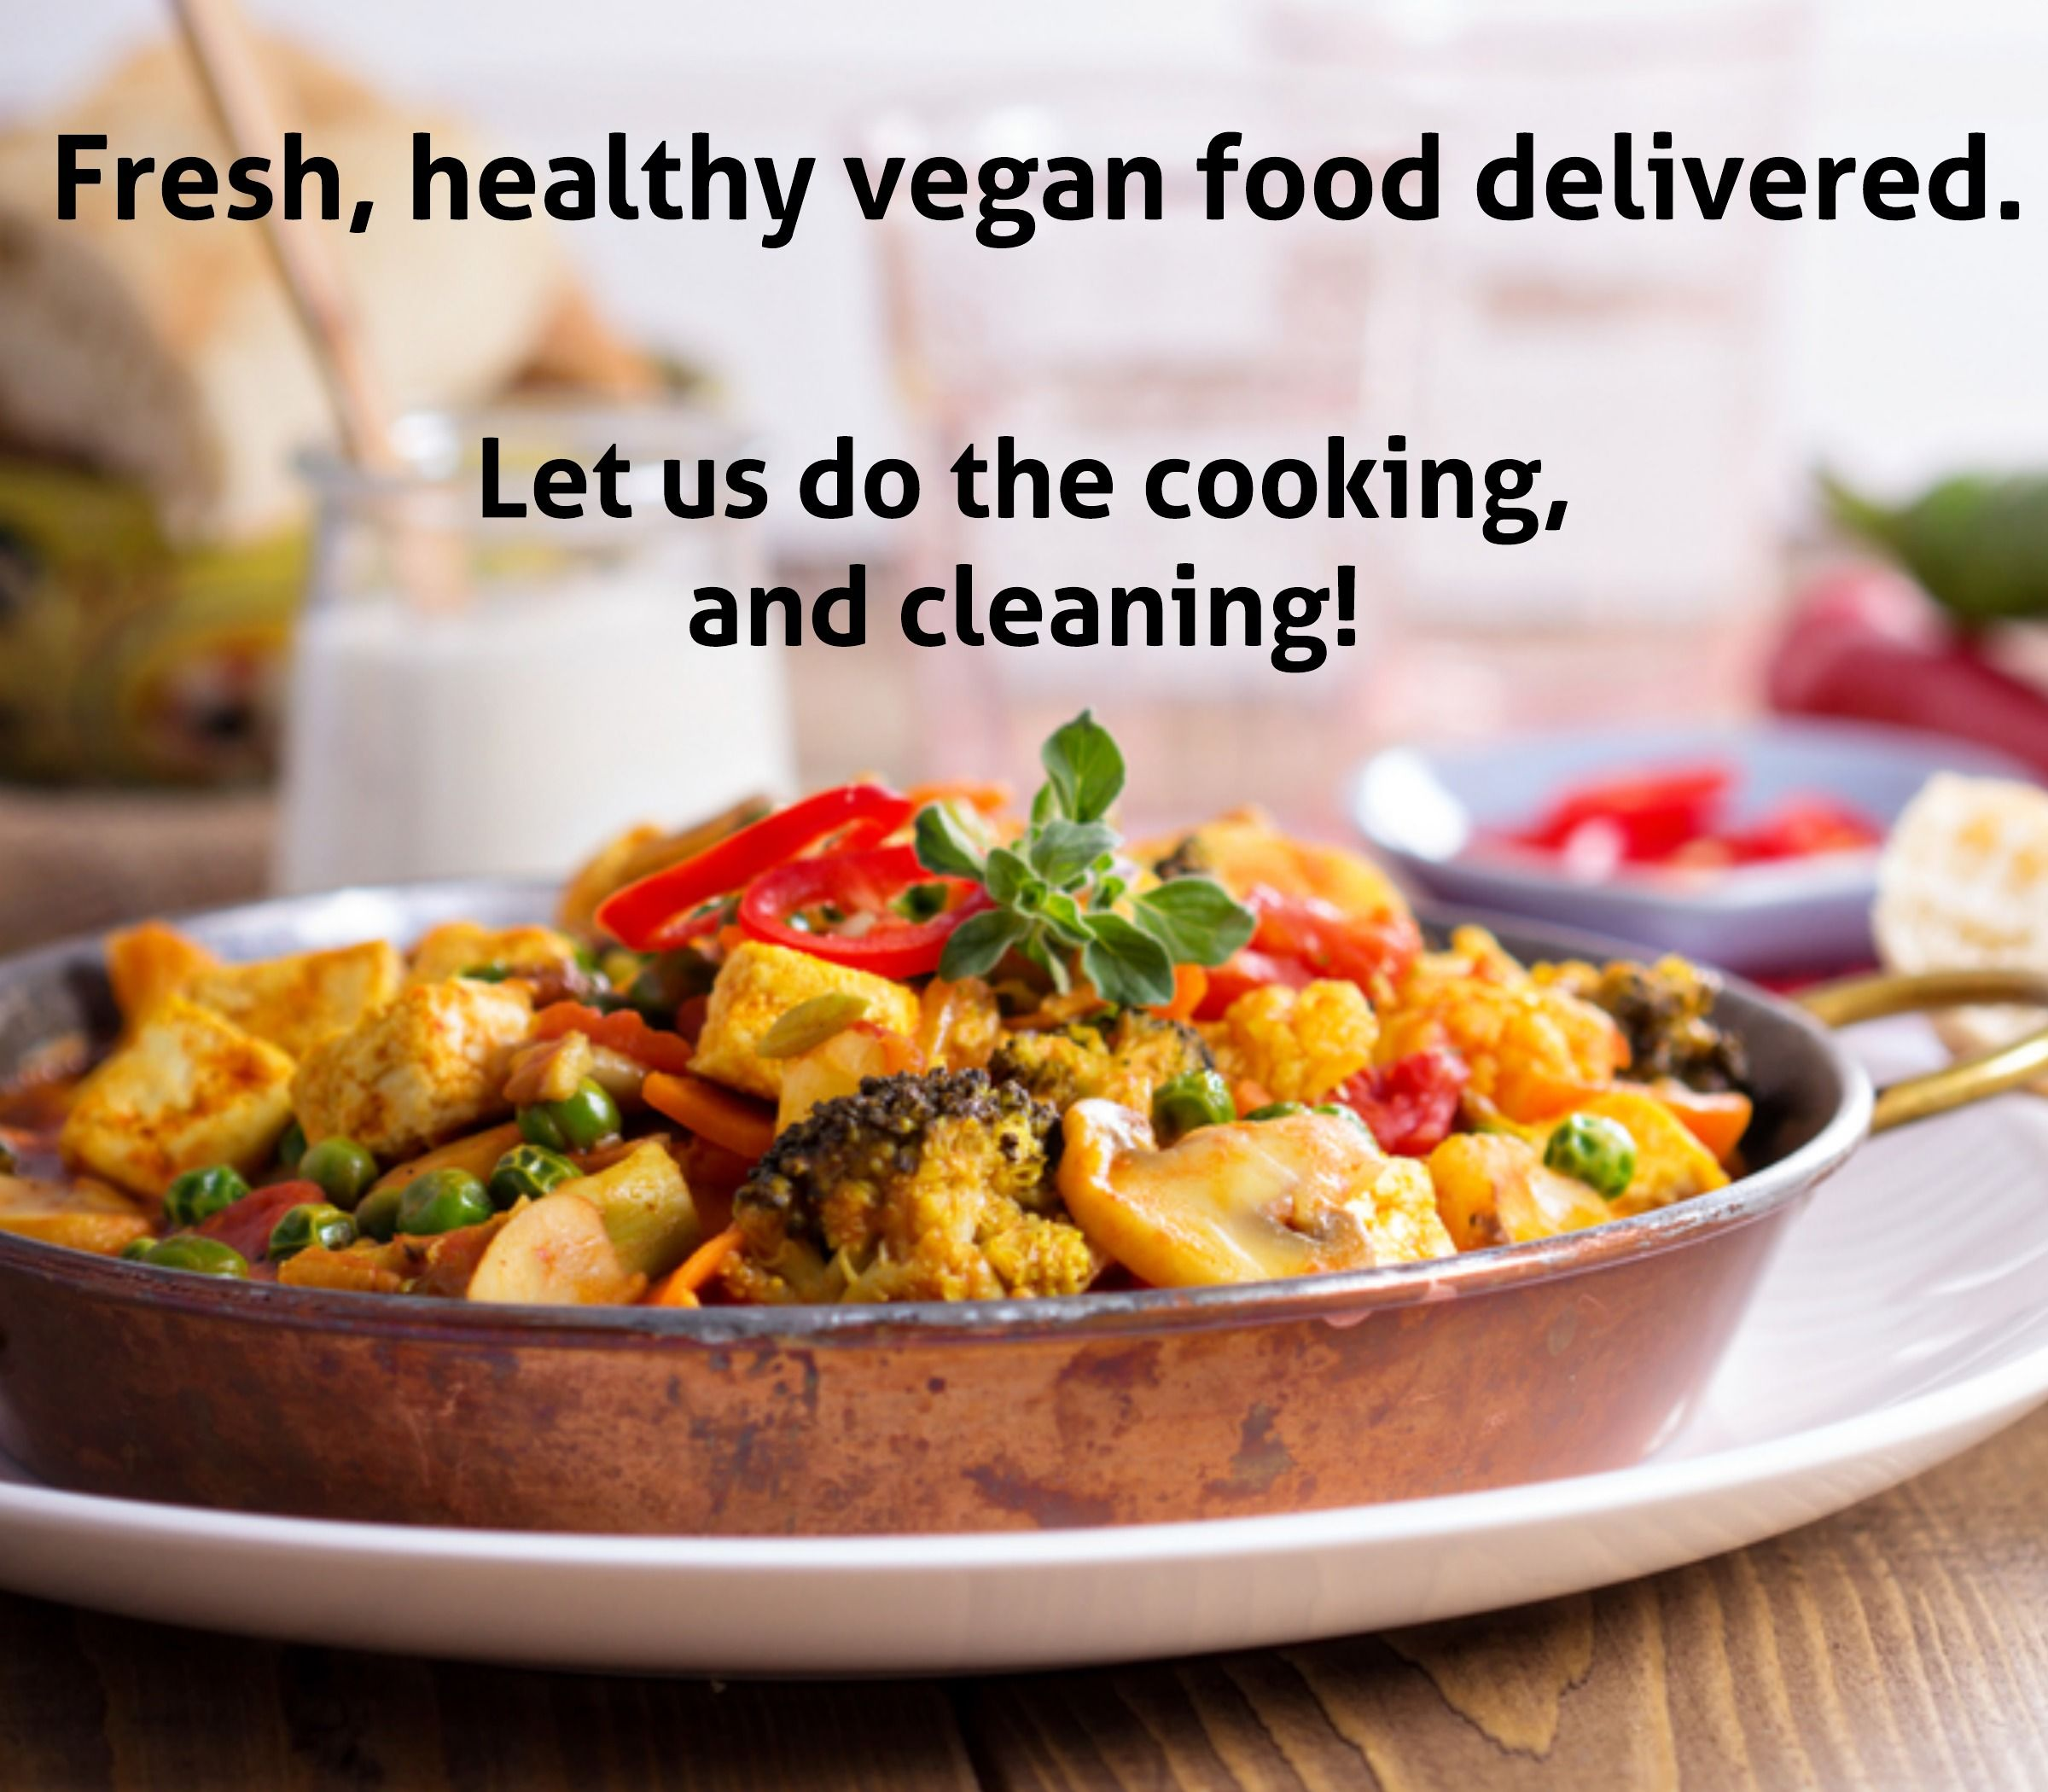 The vegan garden delivered healthy fresh food the vegan garden the vegan garden delivered healthy fresh food the vegan garden makes healthy easy forumfinder